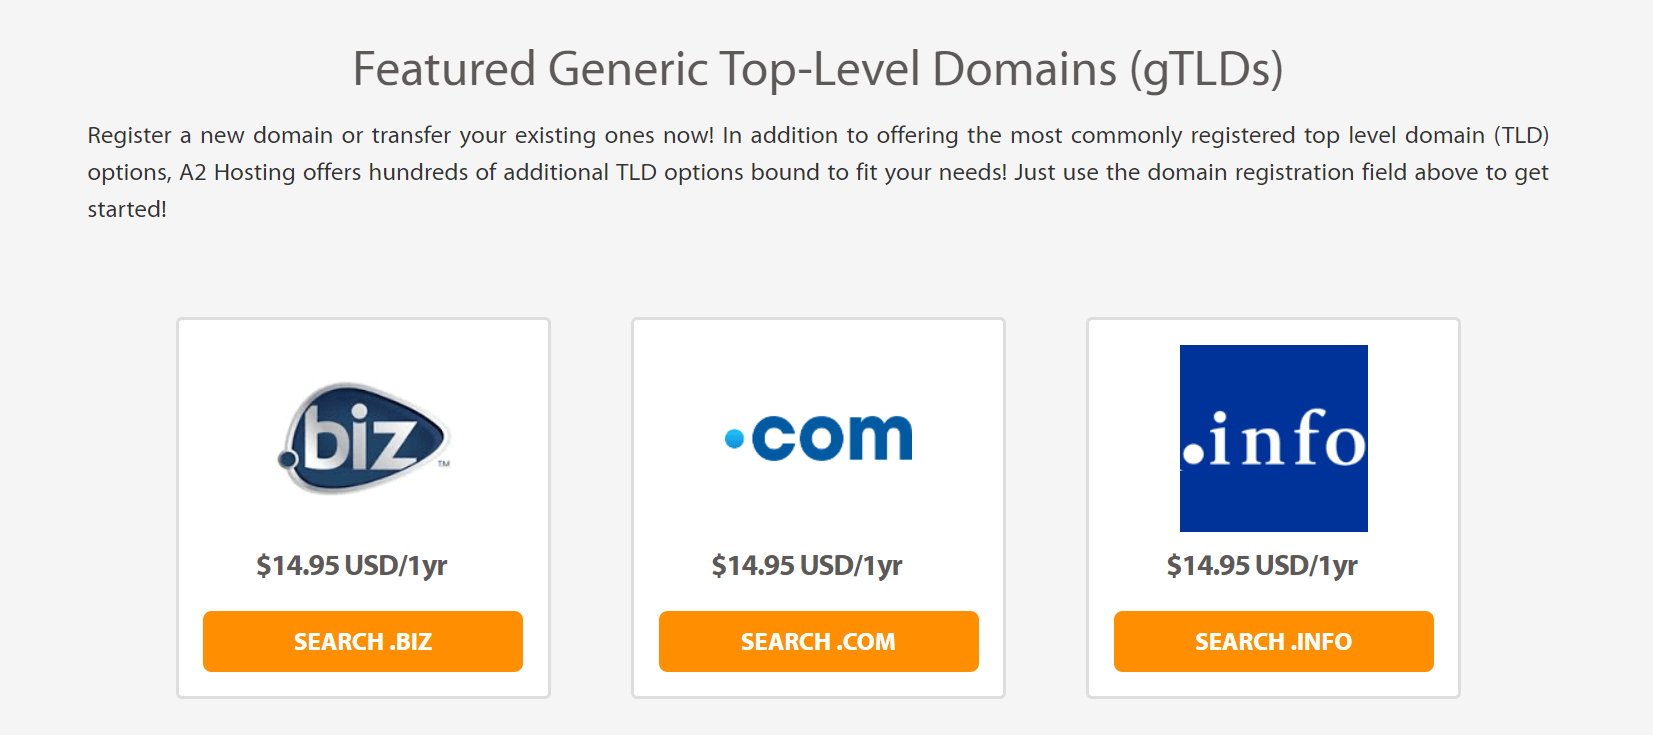 A2 Hosting domain rates.